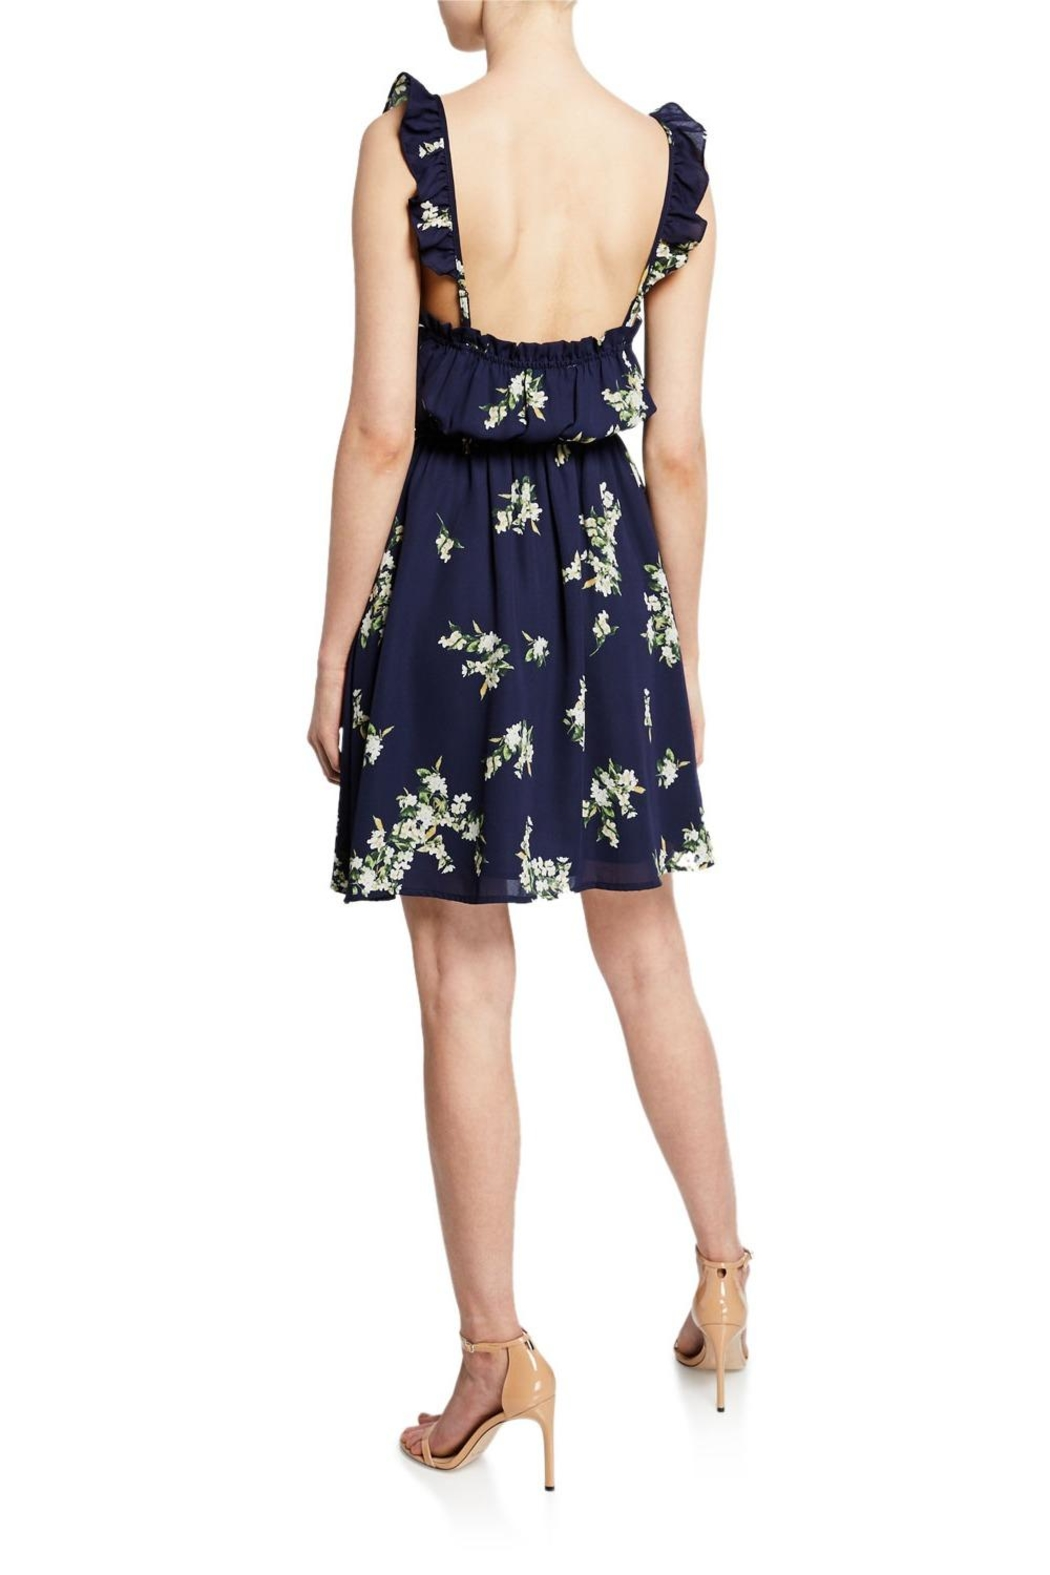 Cupcakes & Cashmere Lynette Floral Dress - Front Full Image